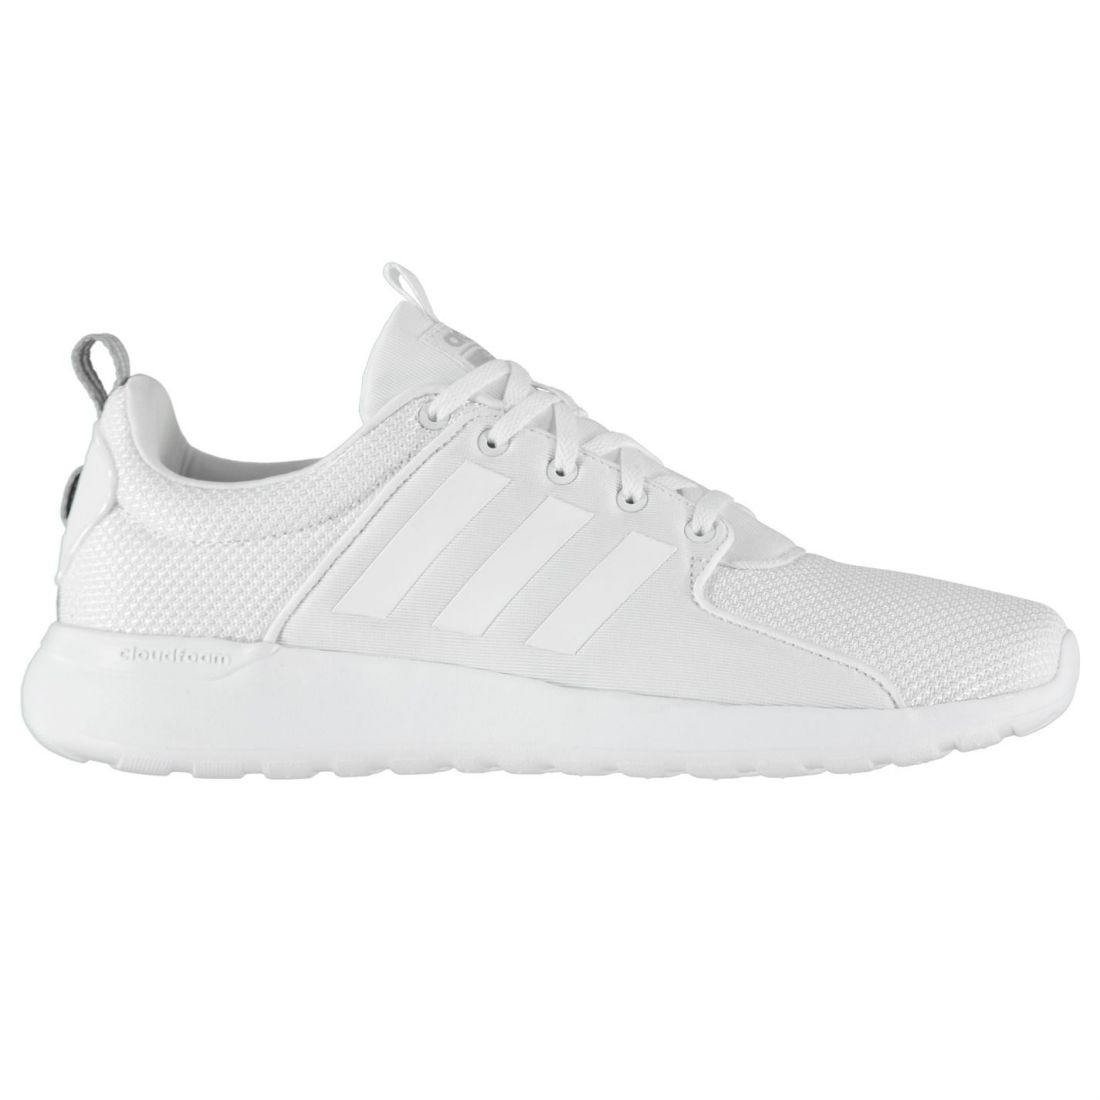 ADIDAS CLOUDFOAM LITE Racer Sneakers Mens Gents Runners Laces Fastened